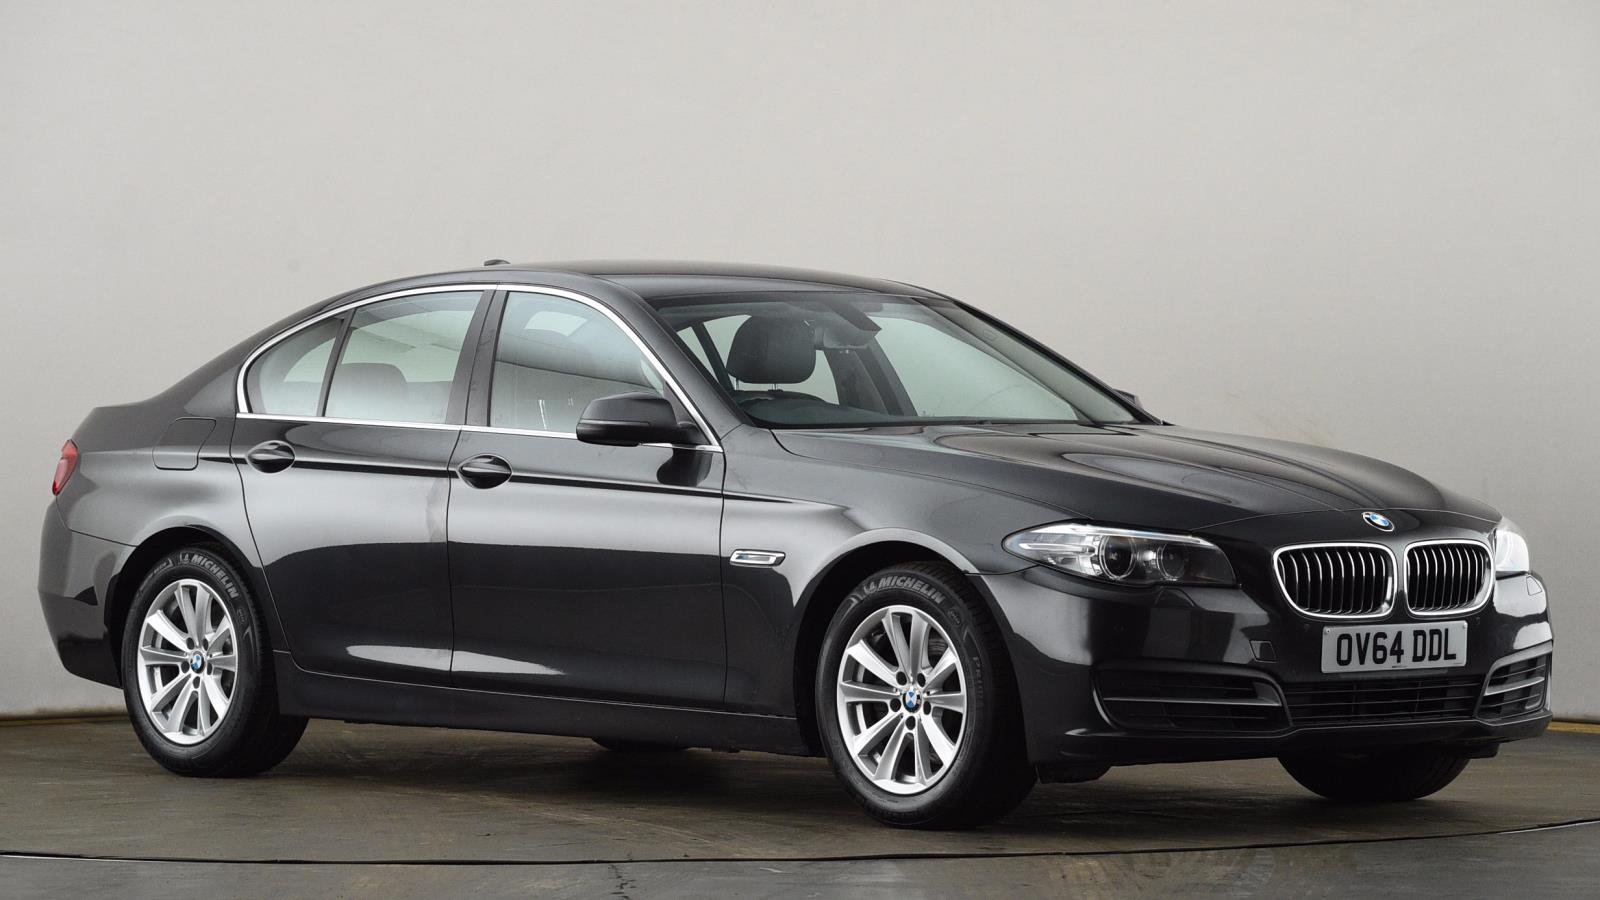 hight resolution of used bmw 5 series used bmw 5 series for sale bmw 5 series finance